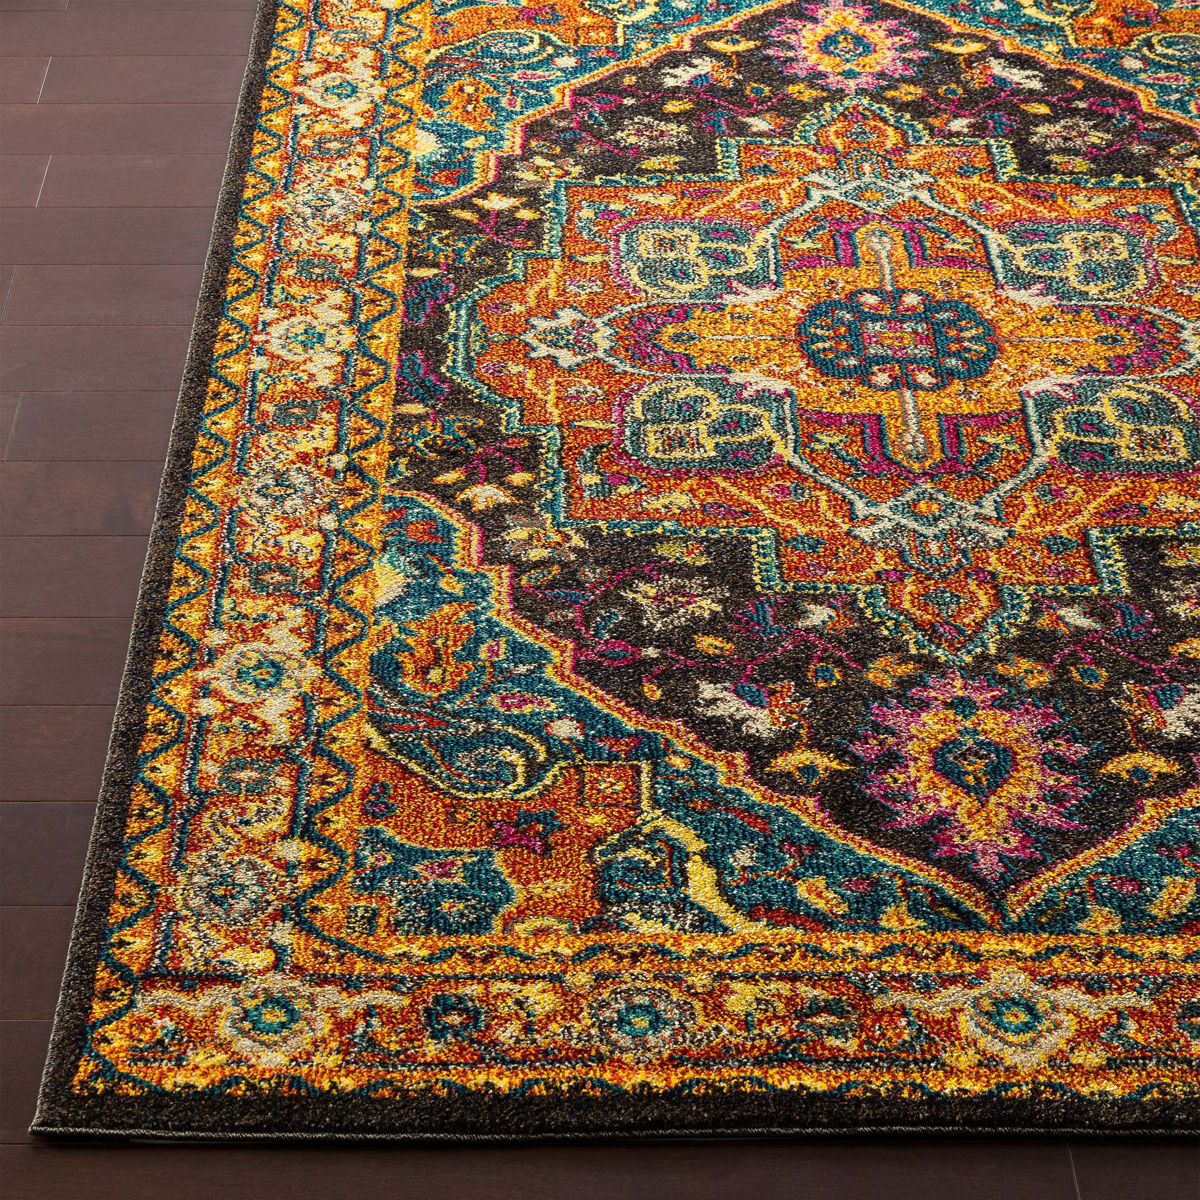 Trendy colorful Turkish rug with hints of blue and yellow from the Surya Anika Collection on wood floor